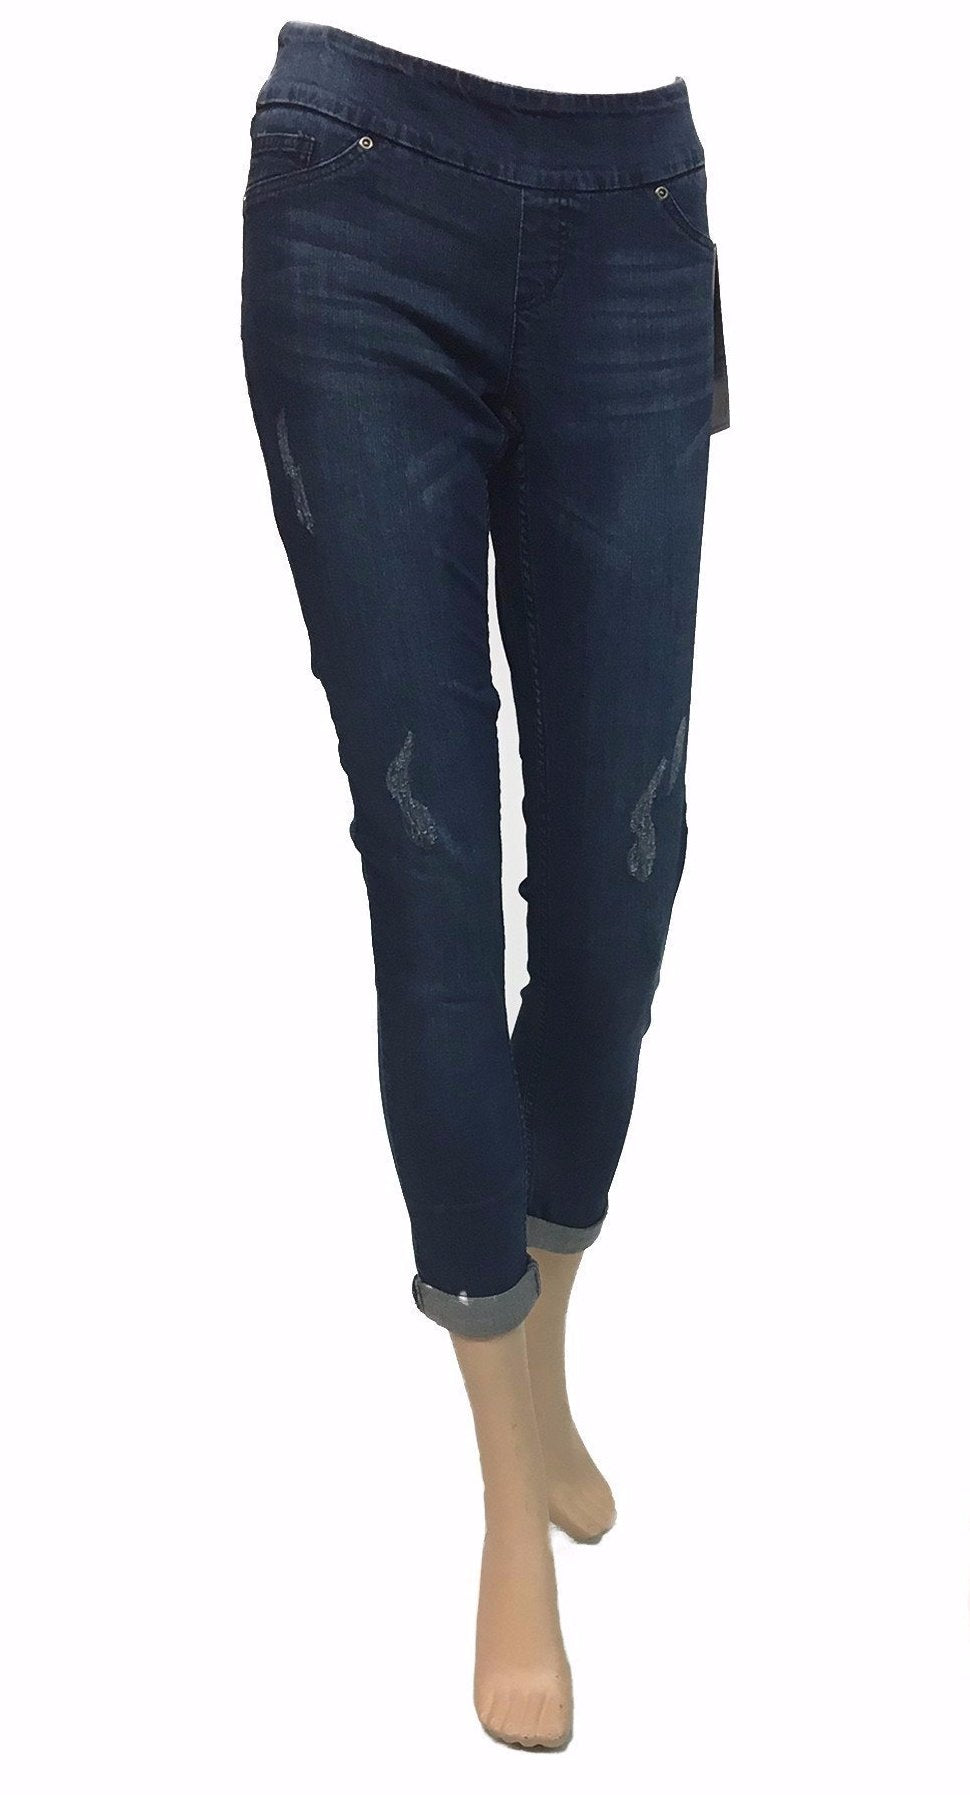 Women's Up! Pants | Up! Techno Skinny Blue Jean Pull-On Pant | Denim